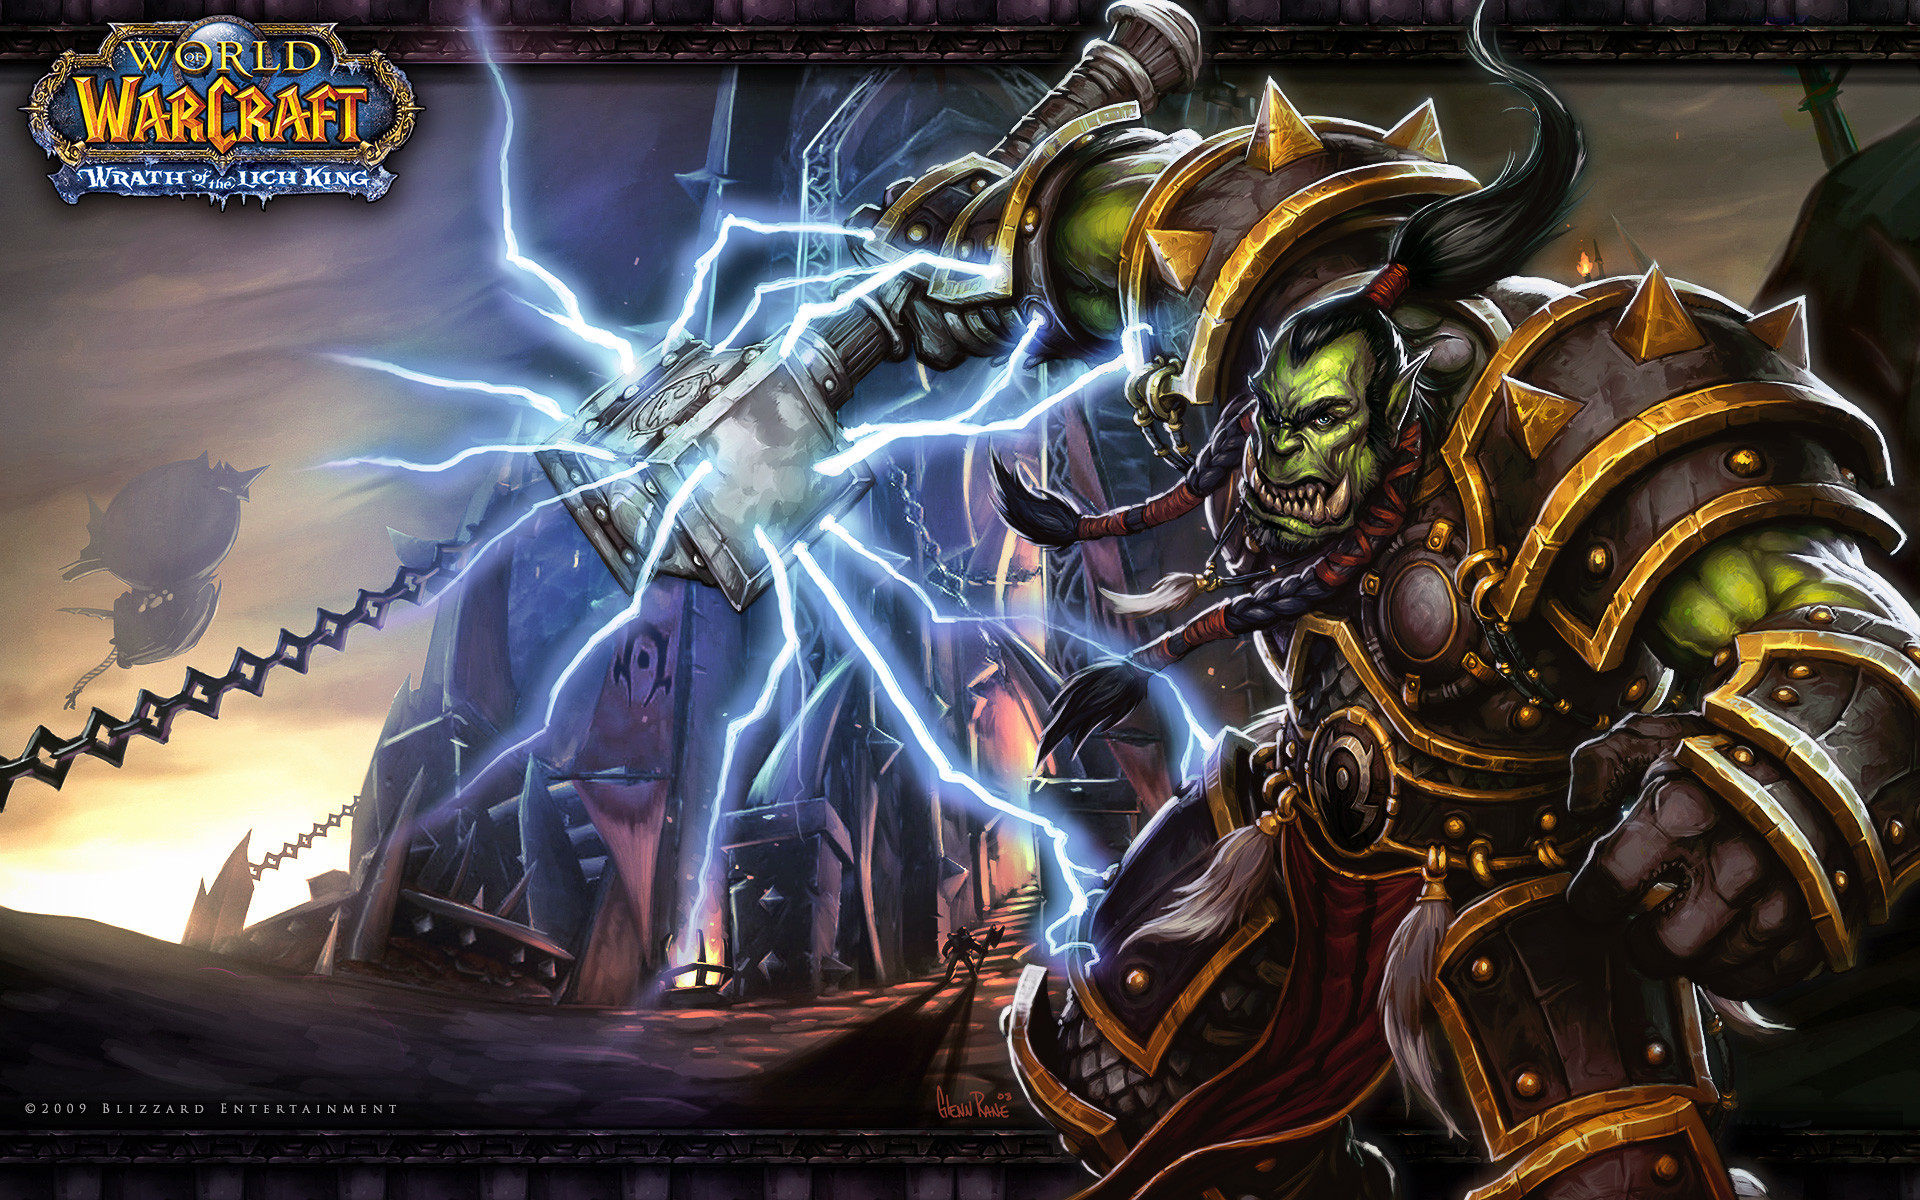 1920x1200 world of warcraft background wallpaper - http://69hdwallpapers.com/world-